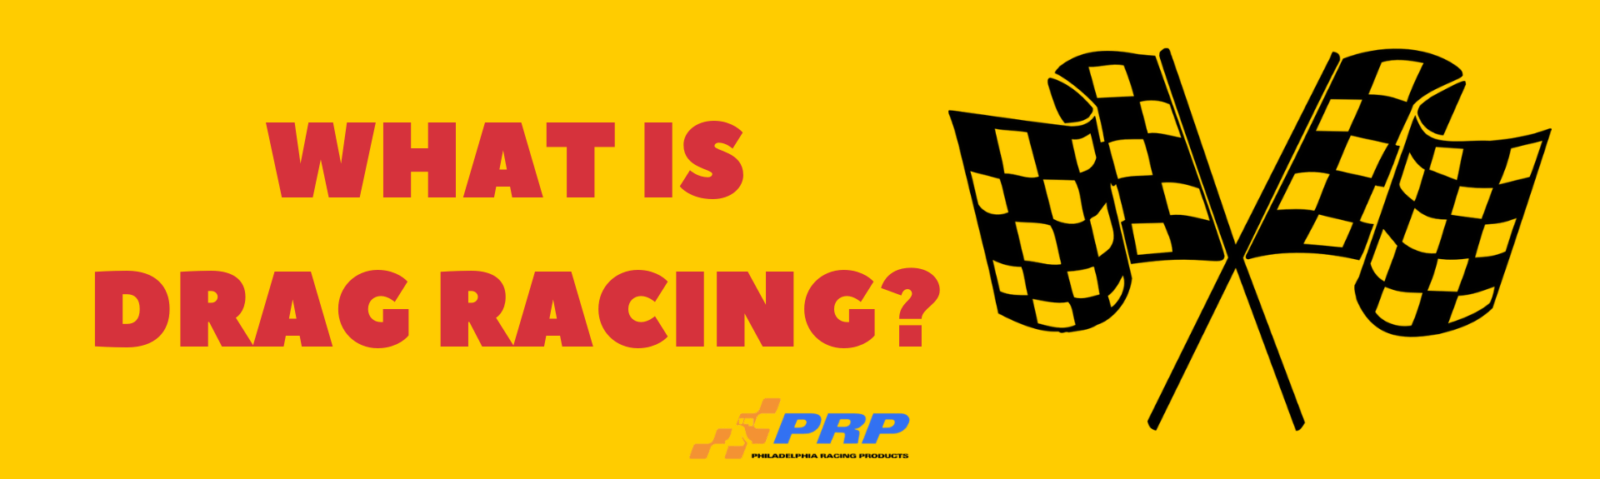 What is Drag Racing? PRP Banner Philadelphia Racing Products